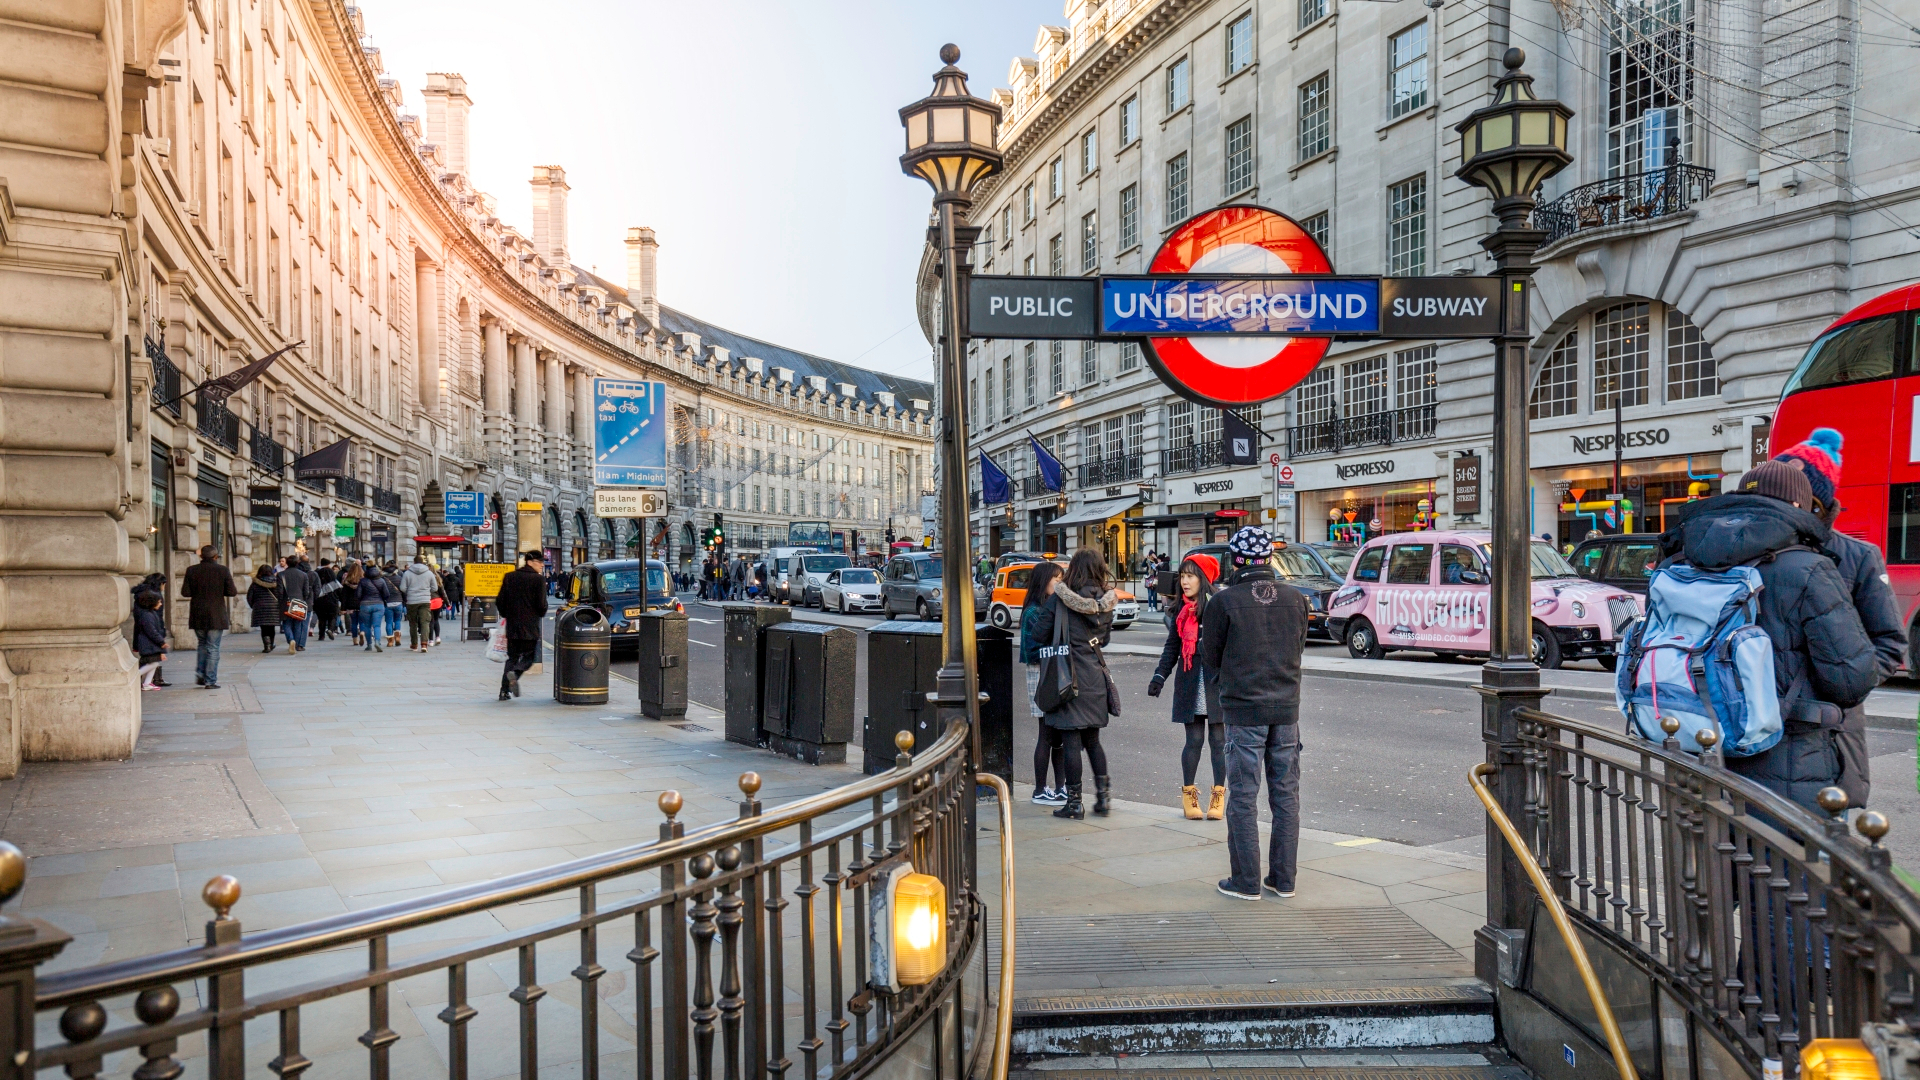 Entrance to Piccadilly Circus tube station.